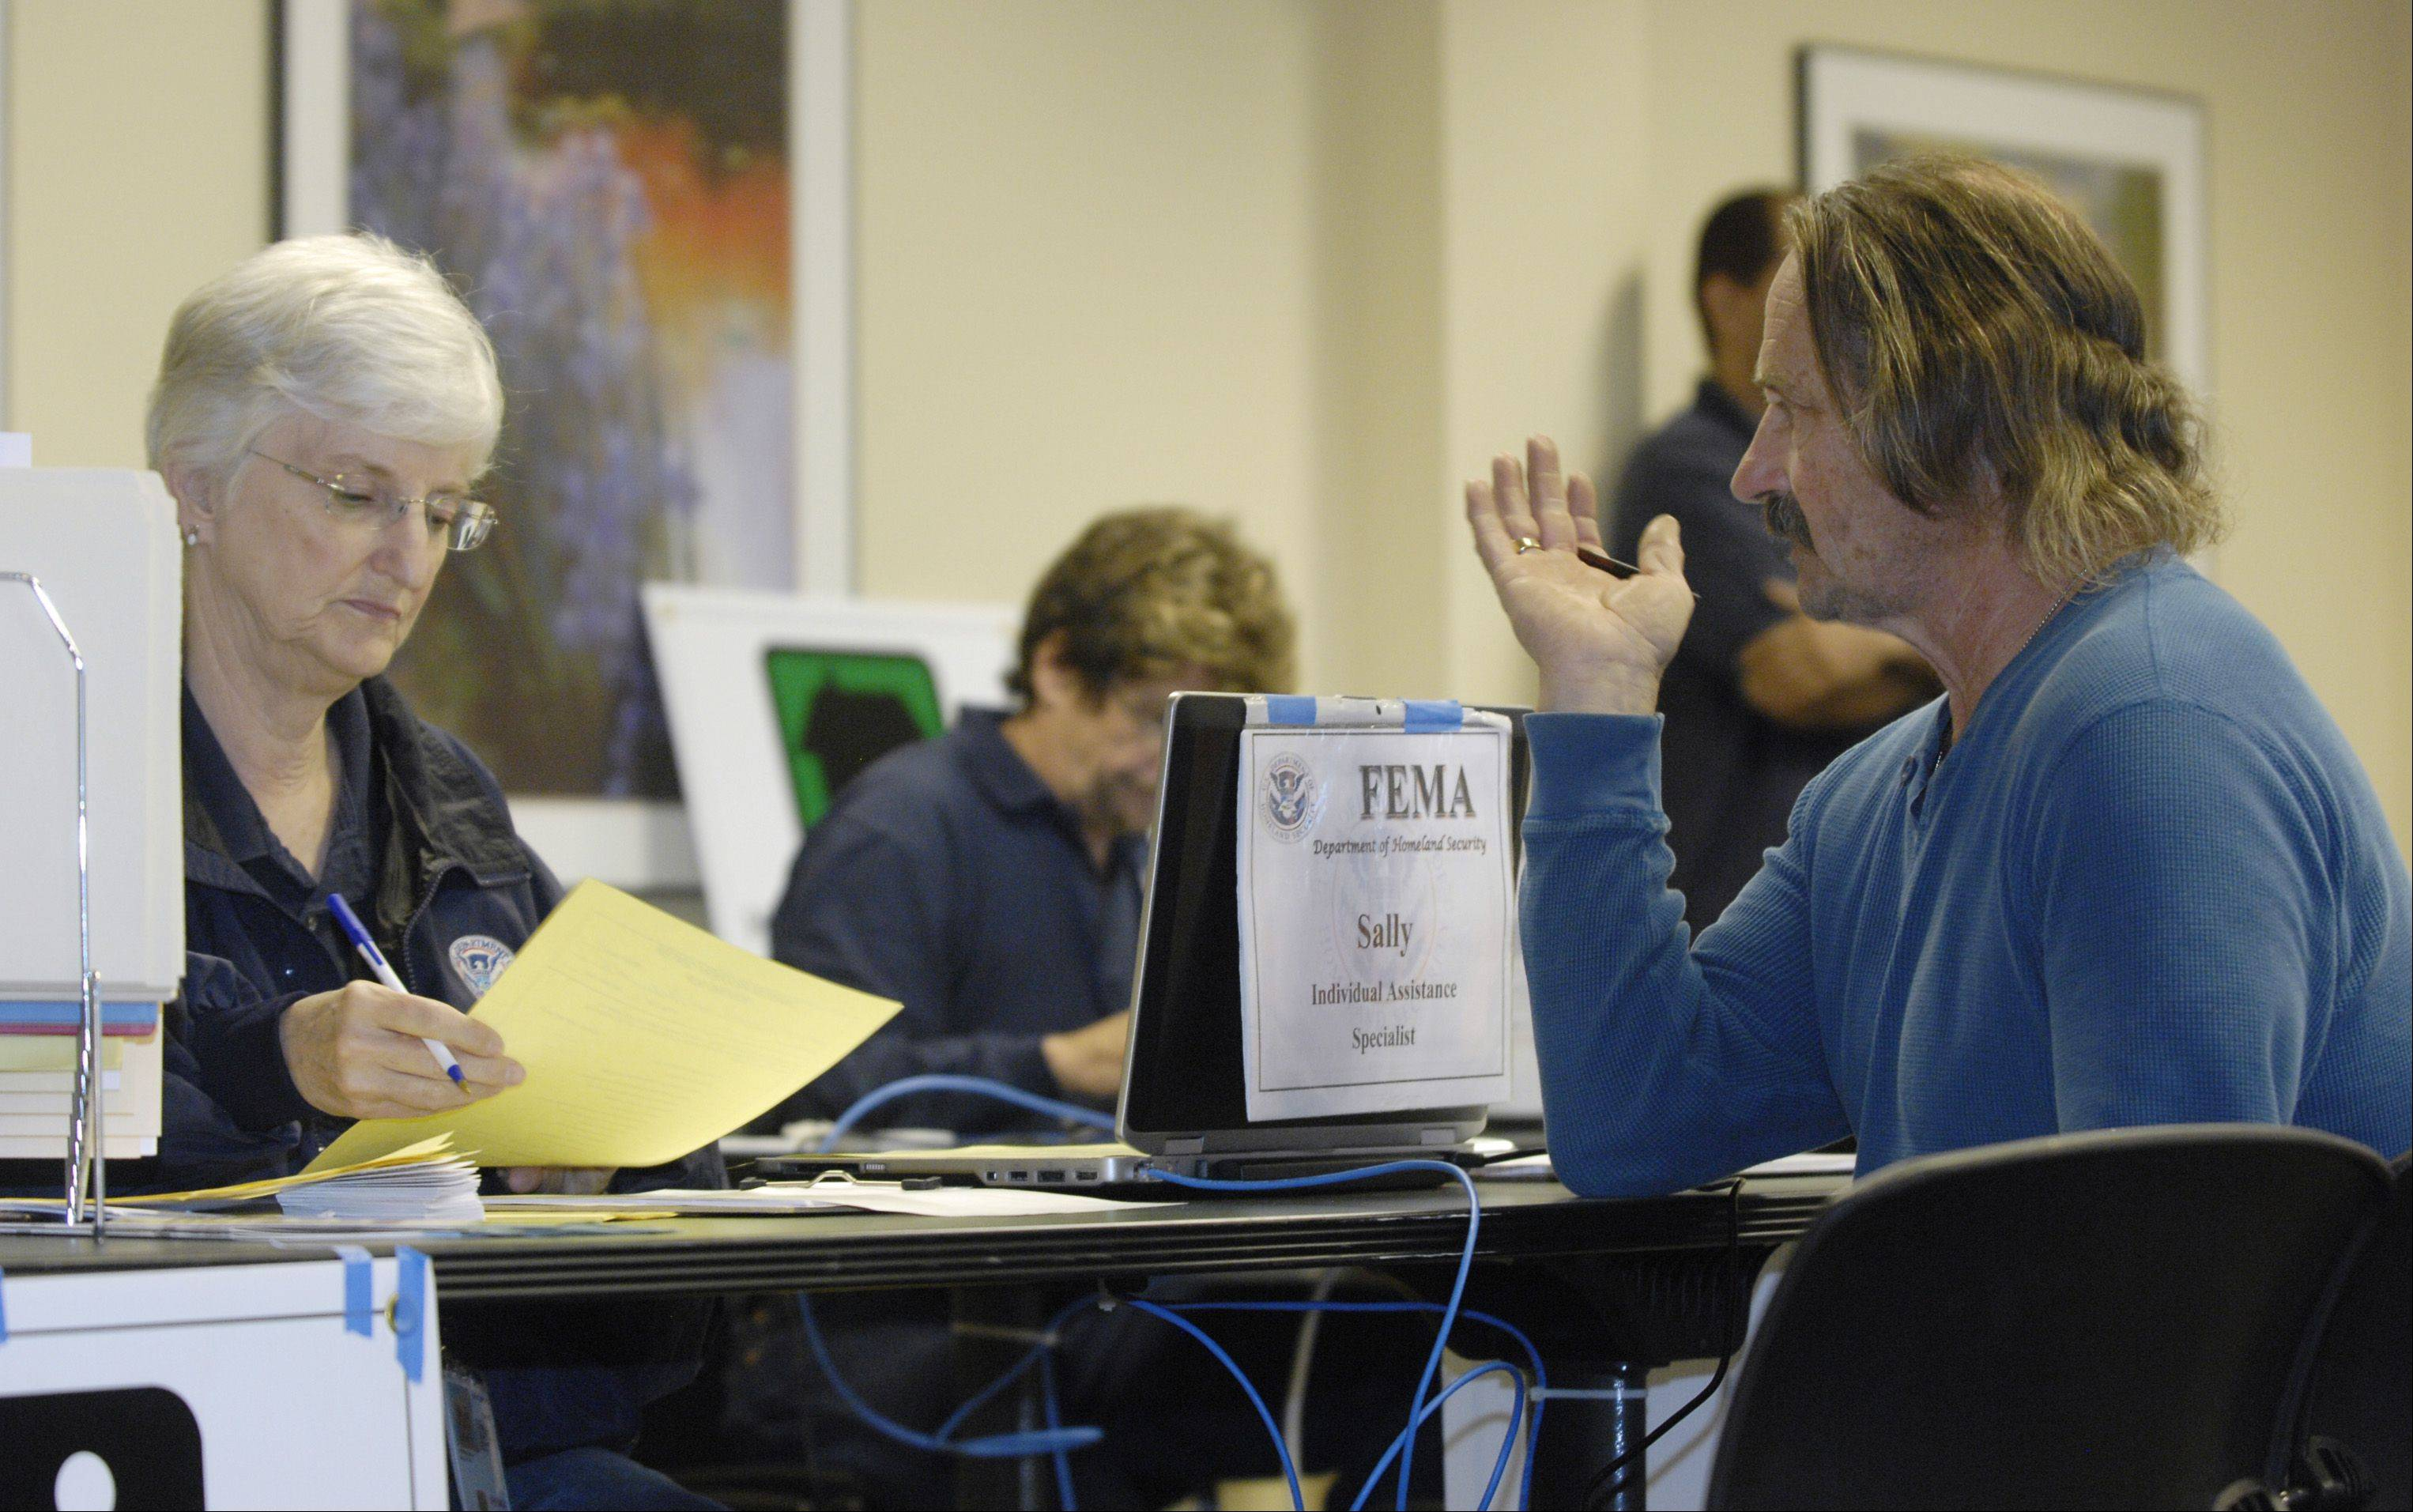 FEMA employee Sally Stribling talks Thursday with flood victim Robert DeVincentis of Lisle in the newly opened FEMA Disaster Recovery Center in the Lisle Police Department. Officials say the center will remain open until residents and business owners no longer need it.